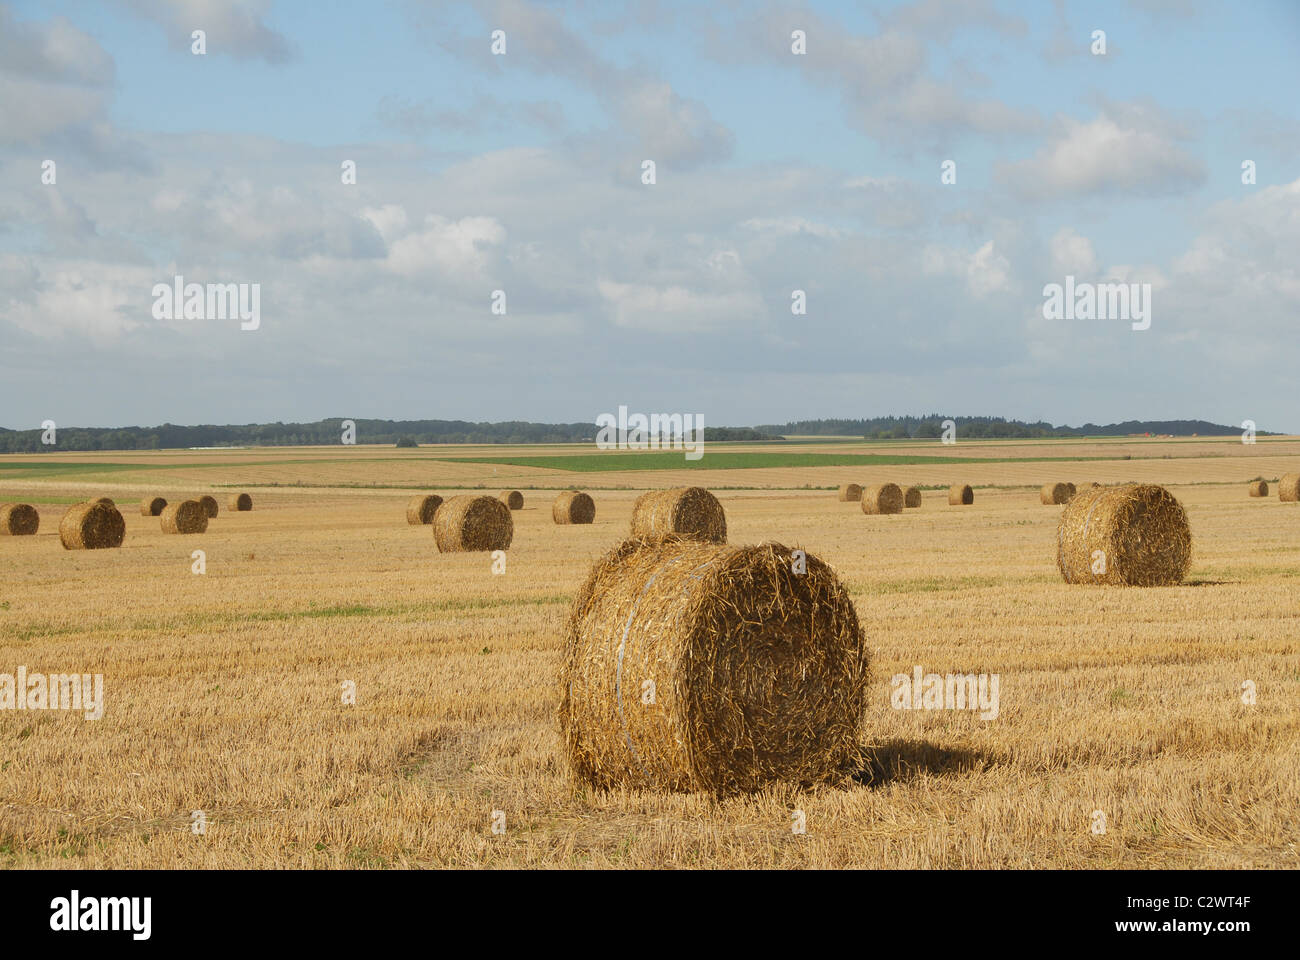 Cornfield after harvest in Northern France's Picardie region with golden straw balls. - Stock Image